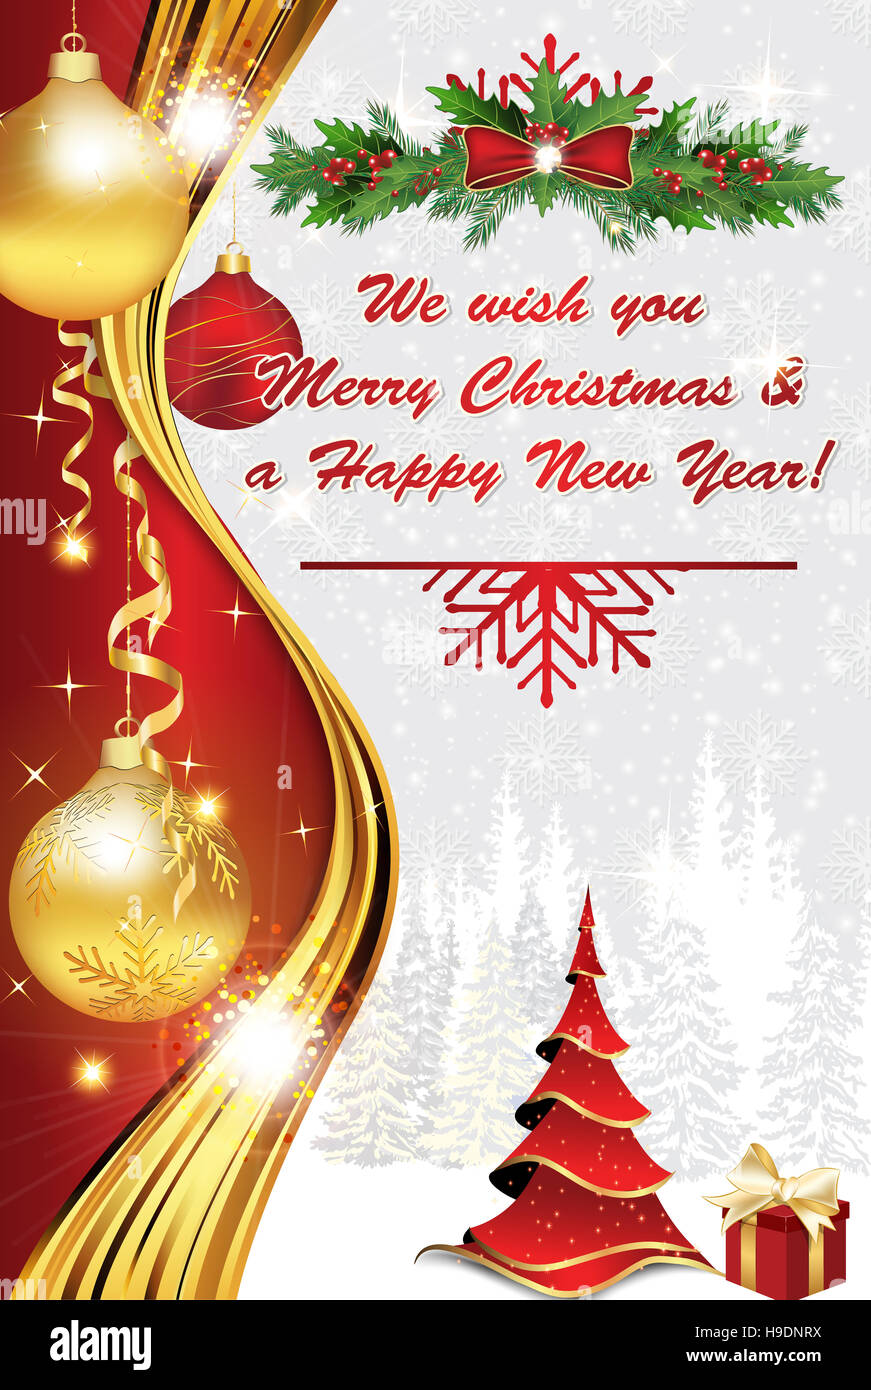 Winter holiday greeting card for print we wish you merry christmas winter holiday greeting card for print we wish you merry christmas and a happy new year print colors used m4hsunfo